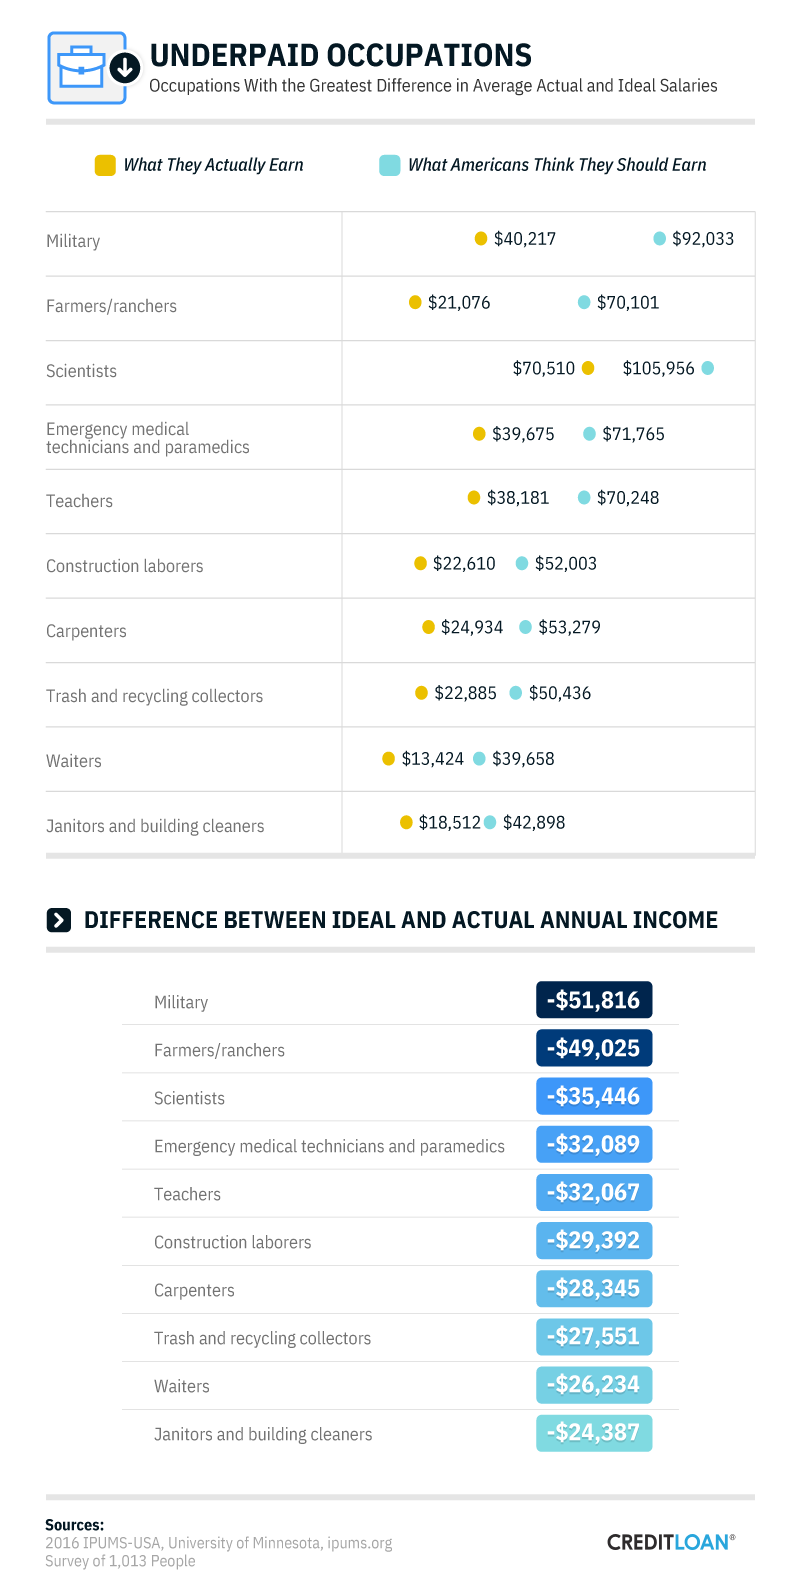 Underpaid Occupations